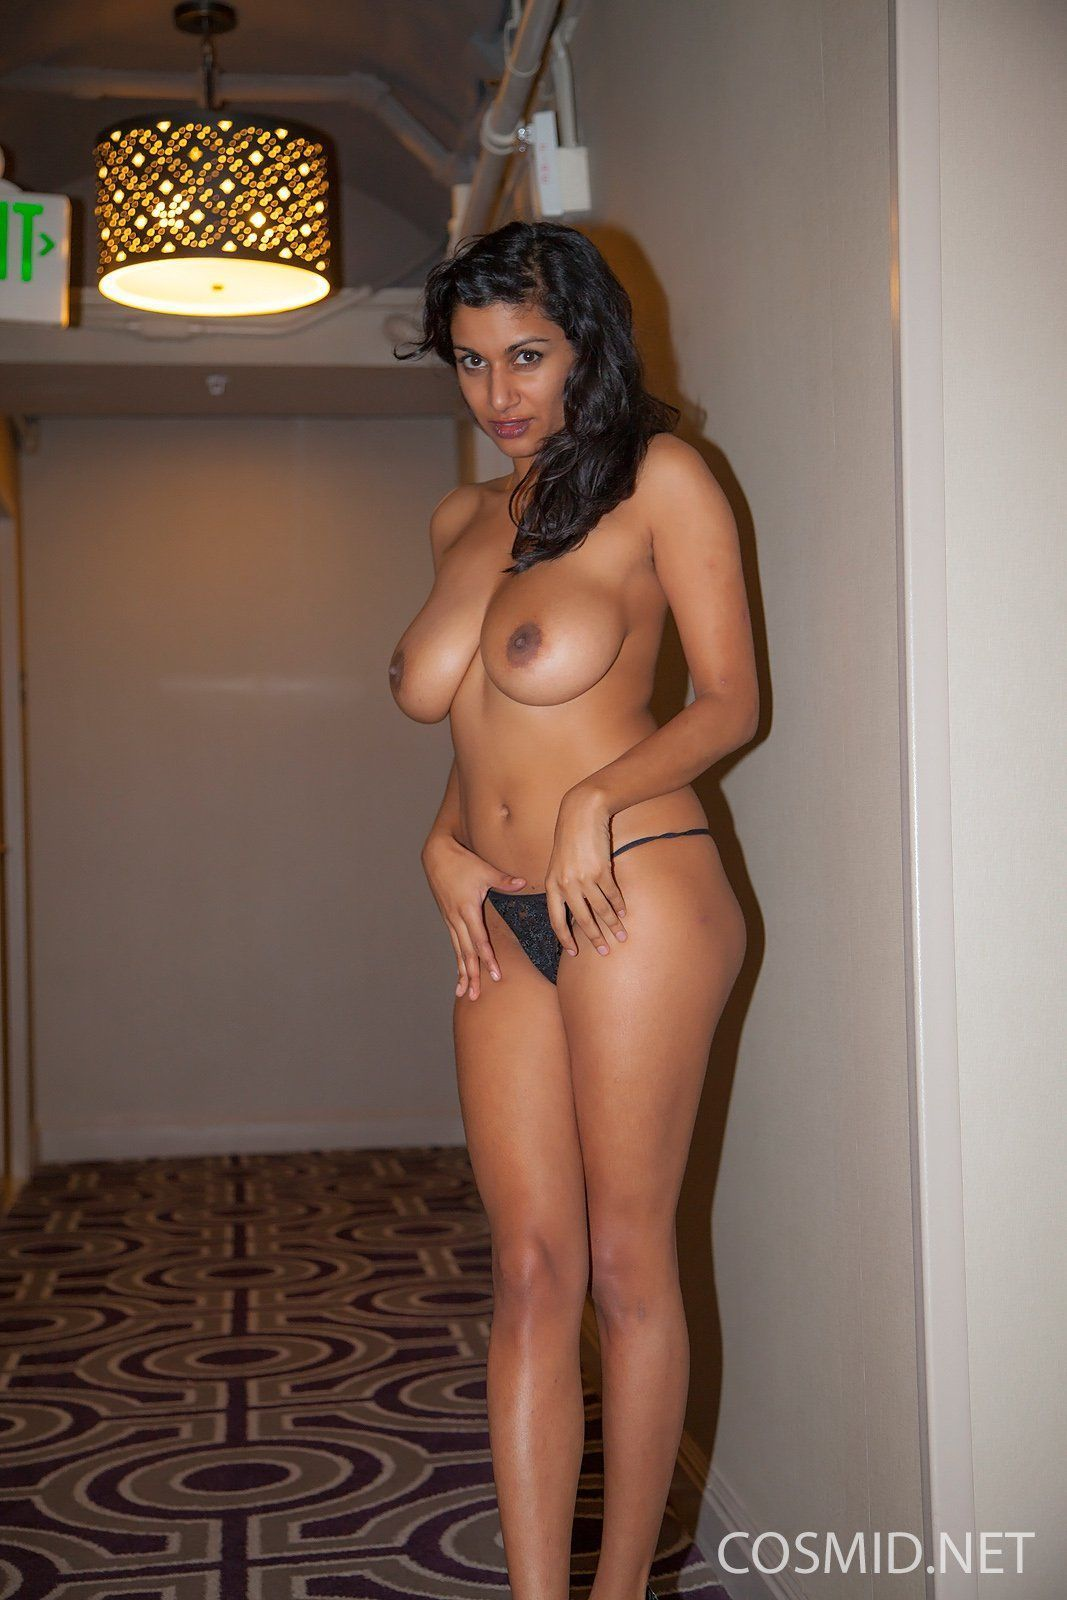 Vet reccomend Images of indian nude women